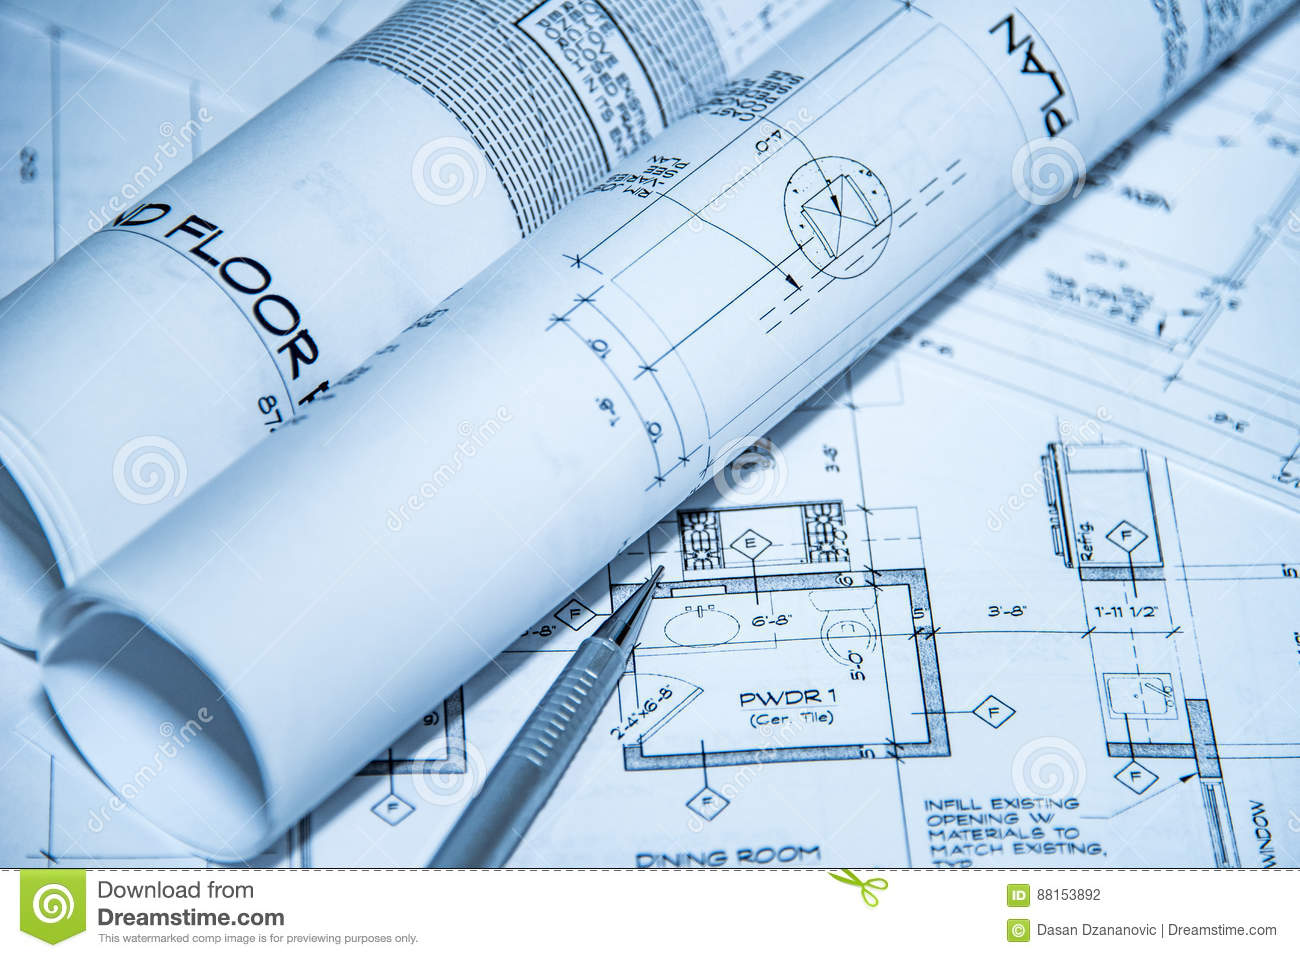 Architects workplace top view of blueprints. Architectural projects, blueprints, blueprint rolls on plans with pencil